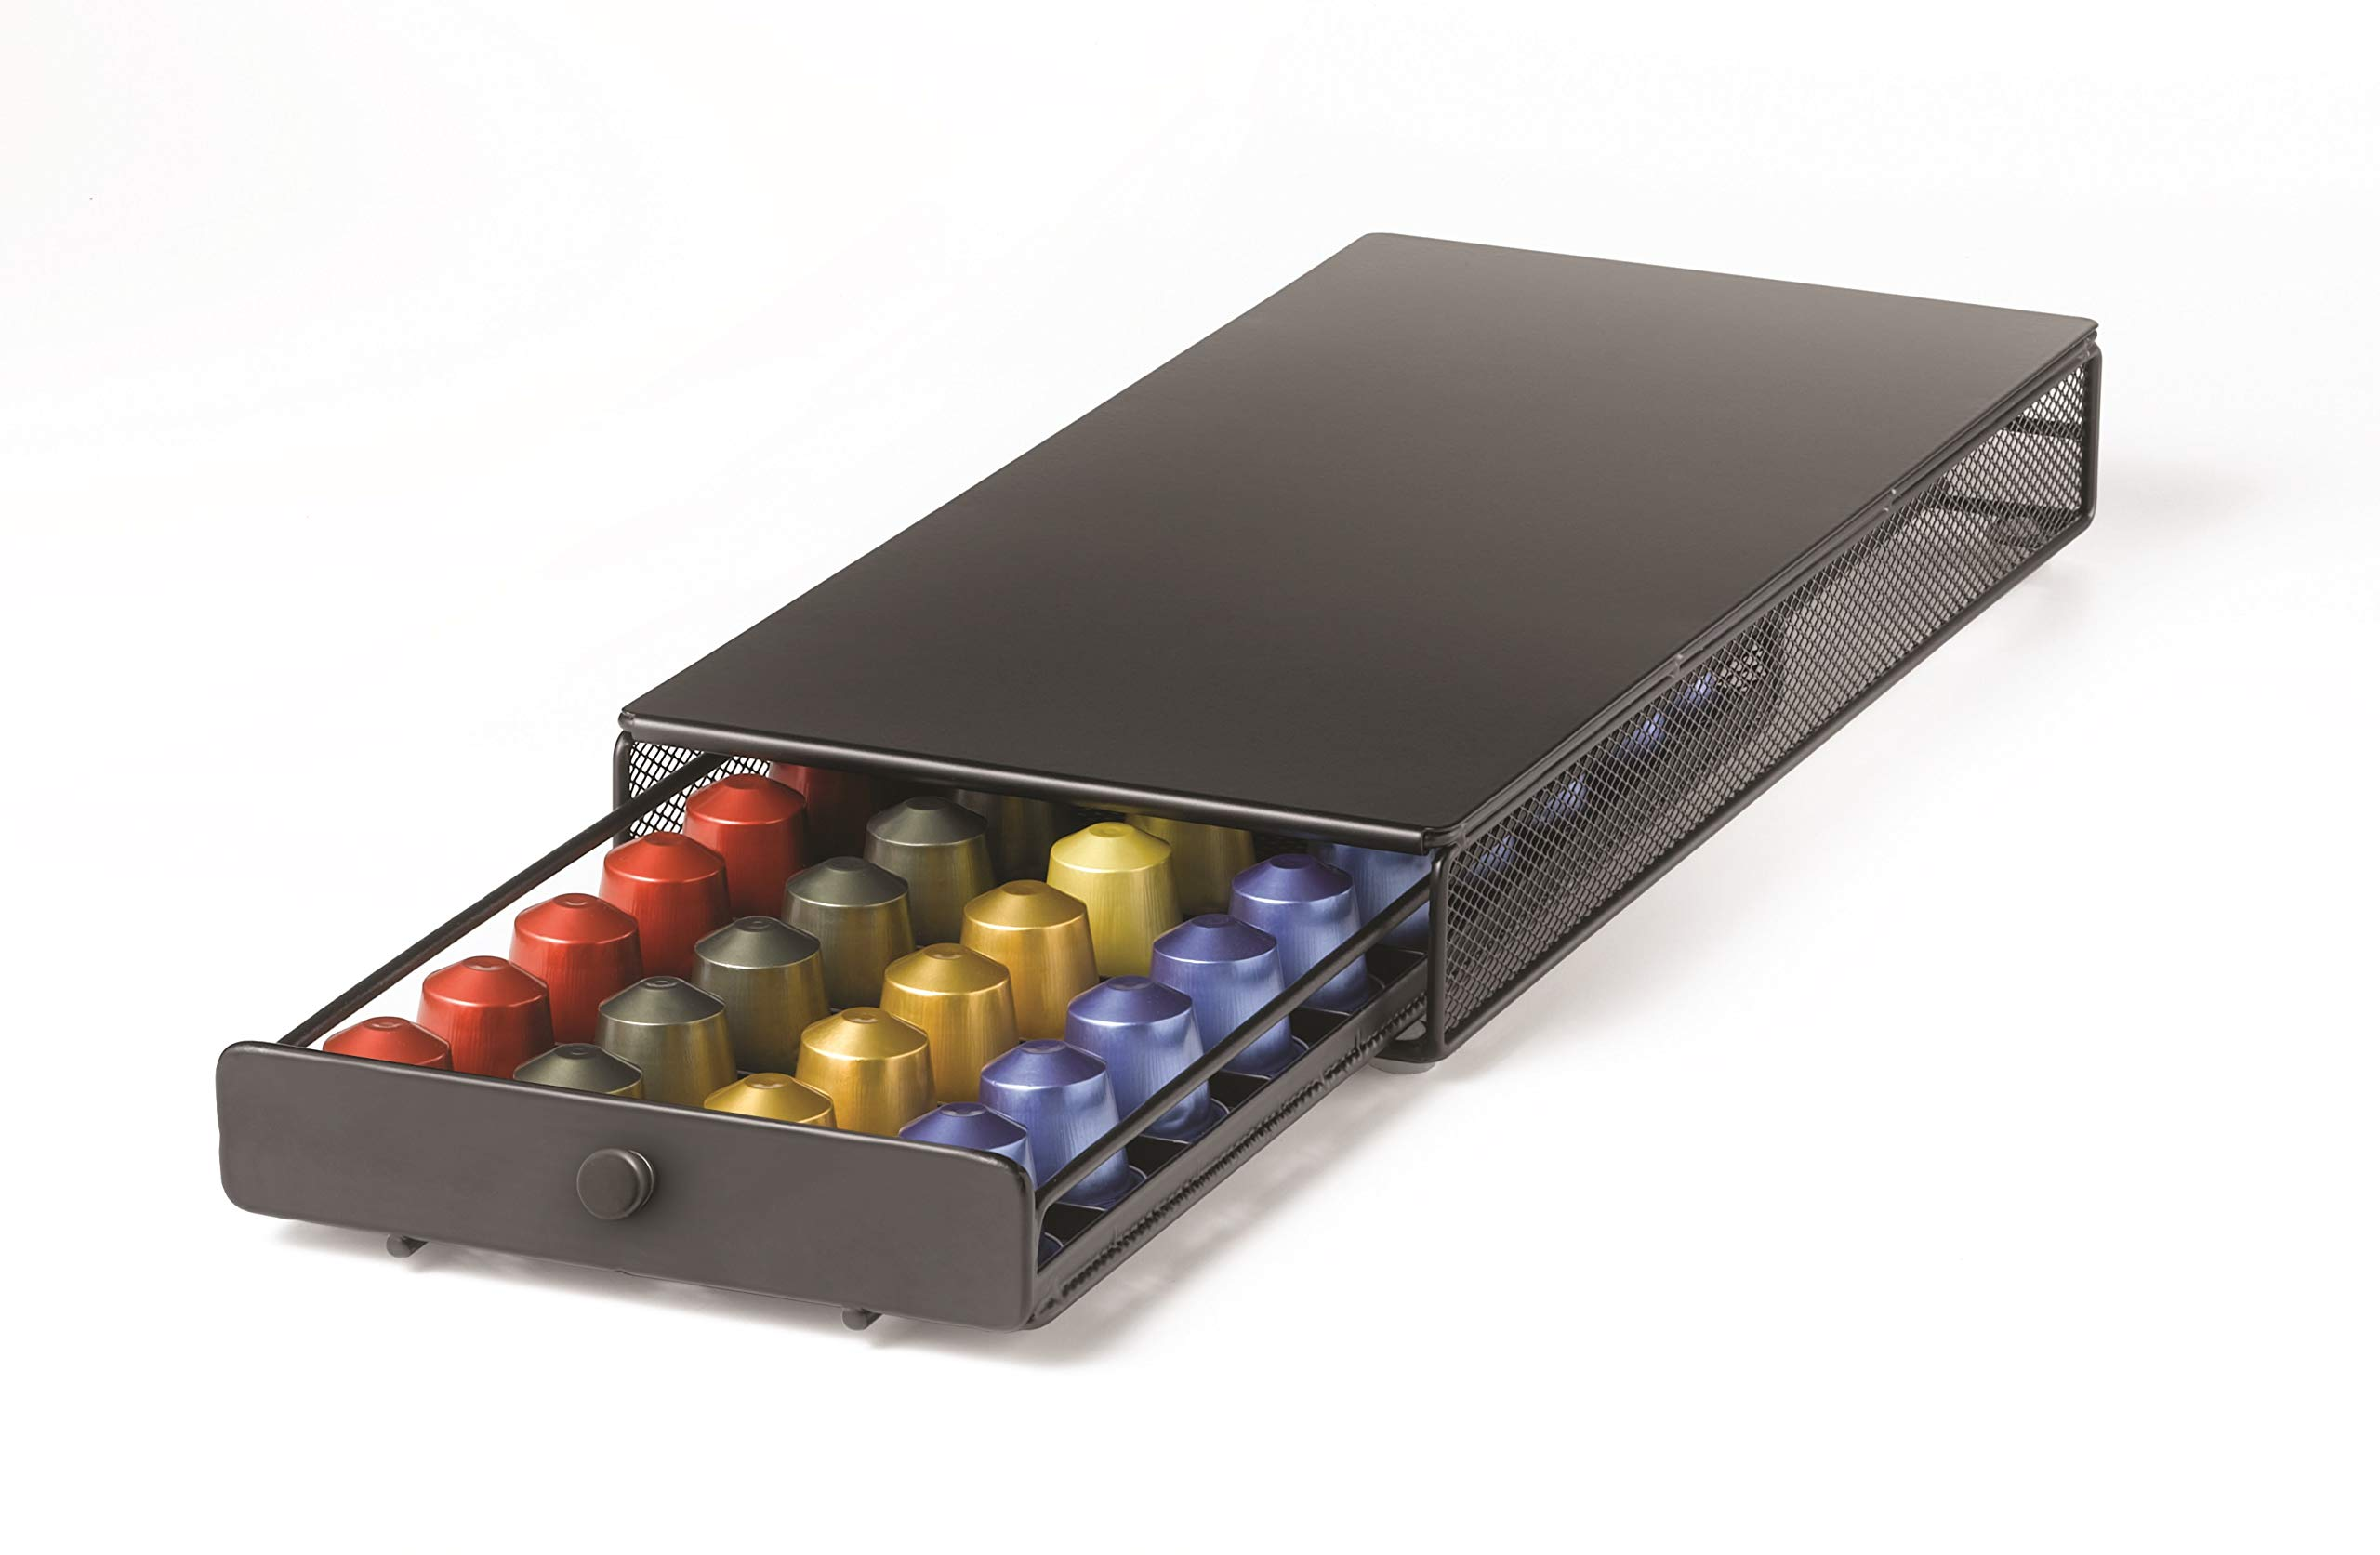 Nifty Nespresso Capsule Drawer - Holds 40 Nespresso Capsules by NIFTY